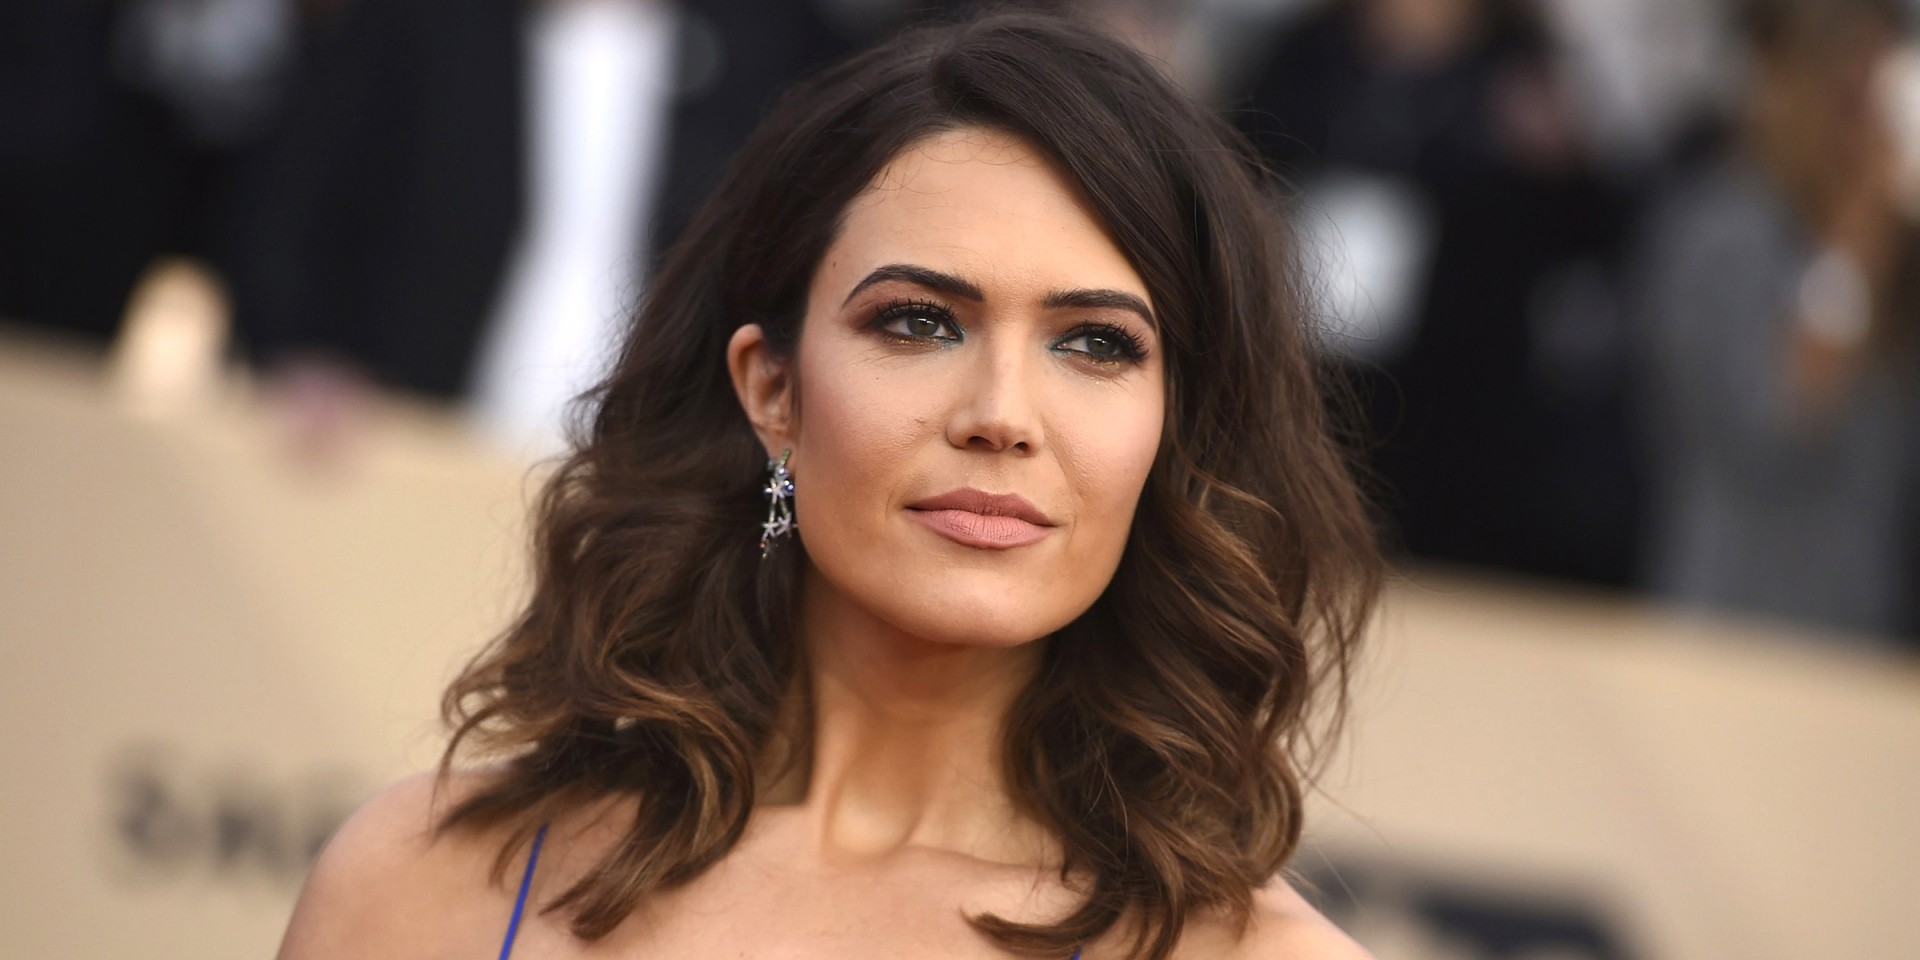 Mandy Moore releases first song since 2009, 'When I Wasn't Watching', shares music video